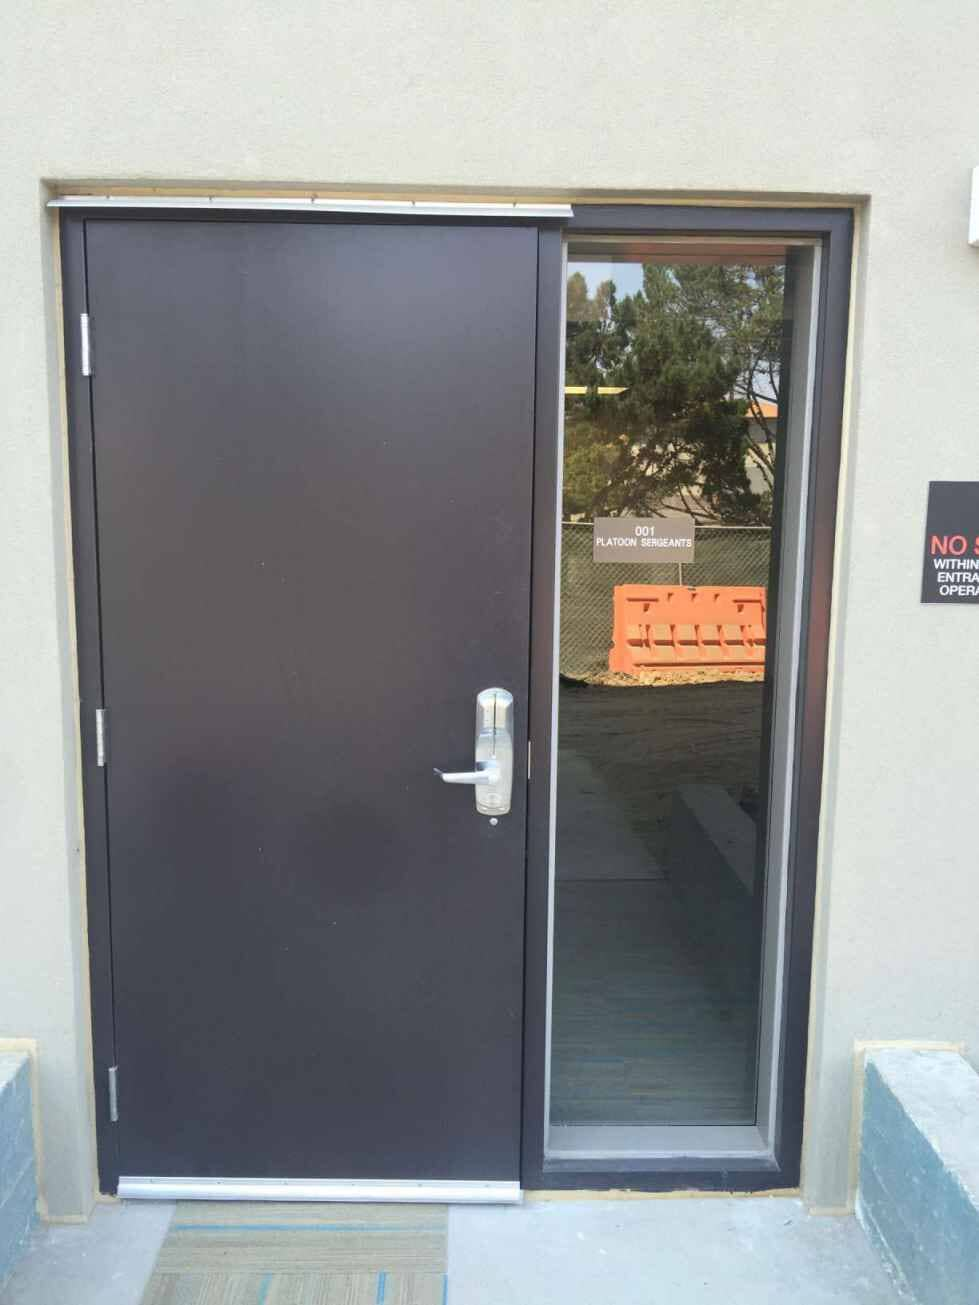 Brown Door - Commercial Door Contractors In Murietta CA & doorframeshardware - Murrieta CA - Temecula Valley Drywall Inc.